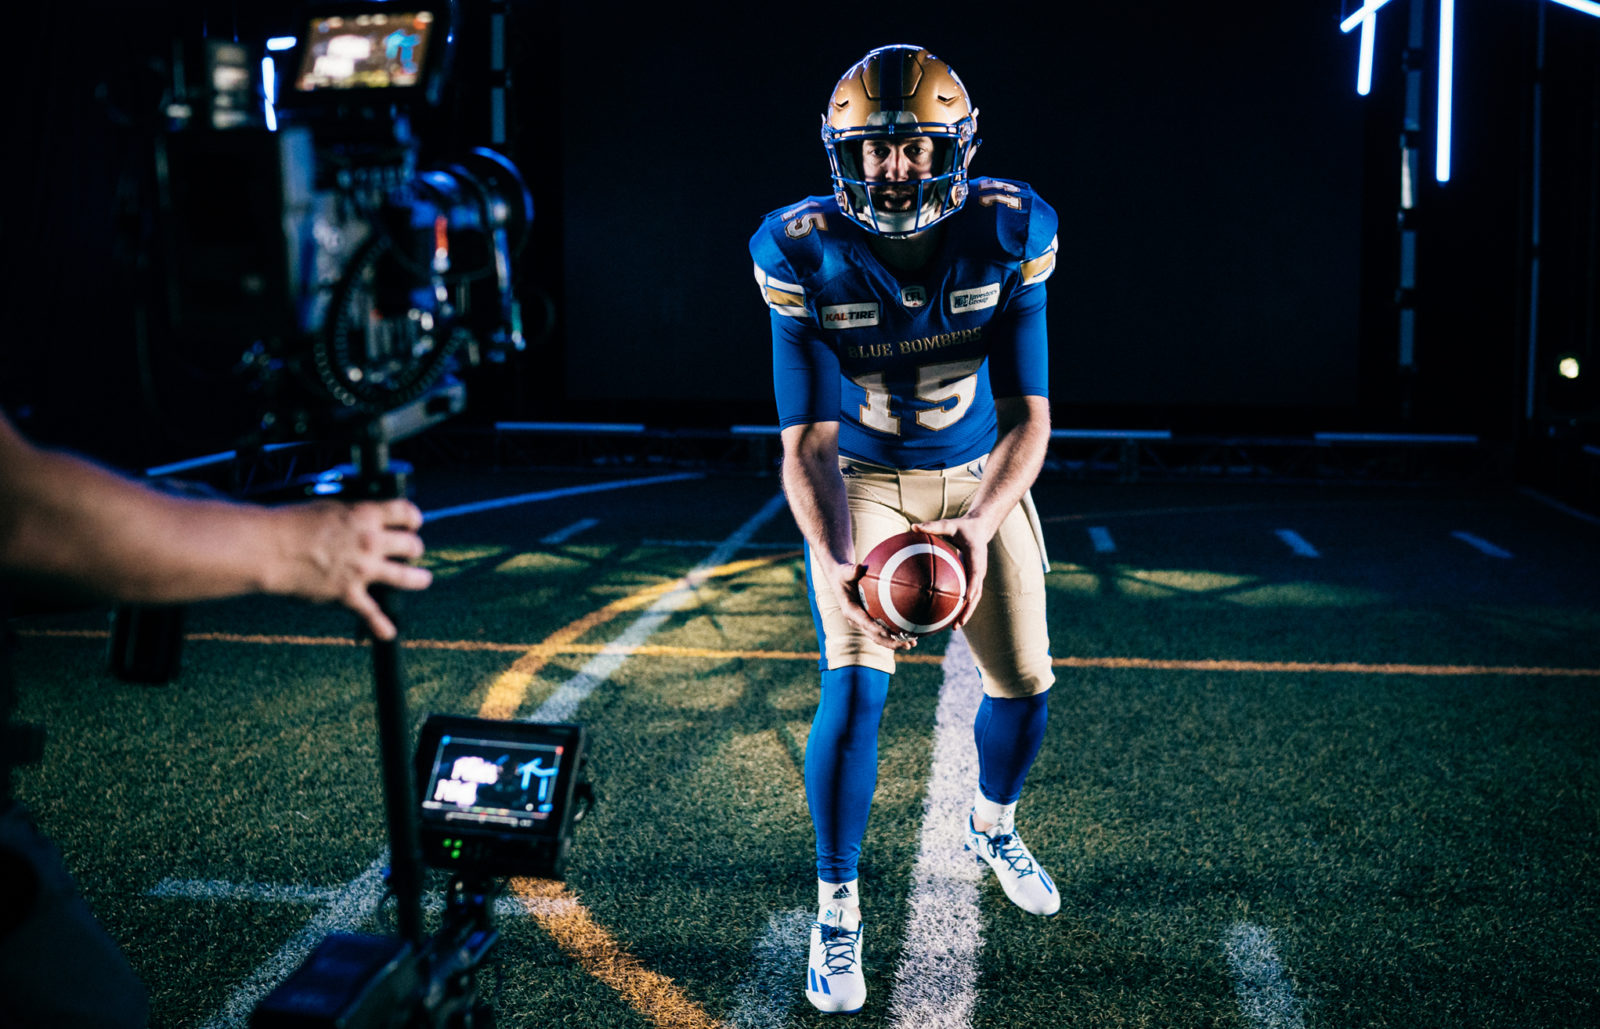 21f29dfbe 2018  The year in pictures - CFL.ca